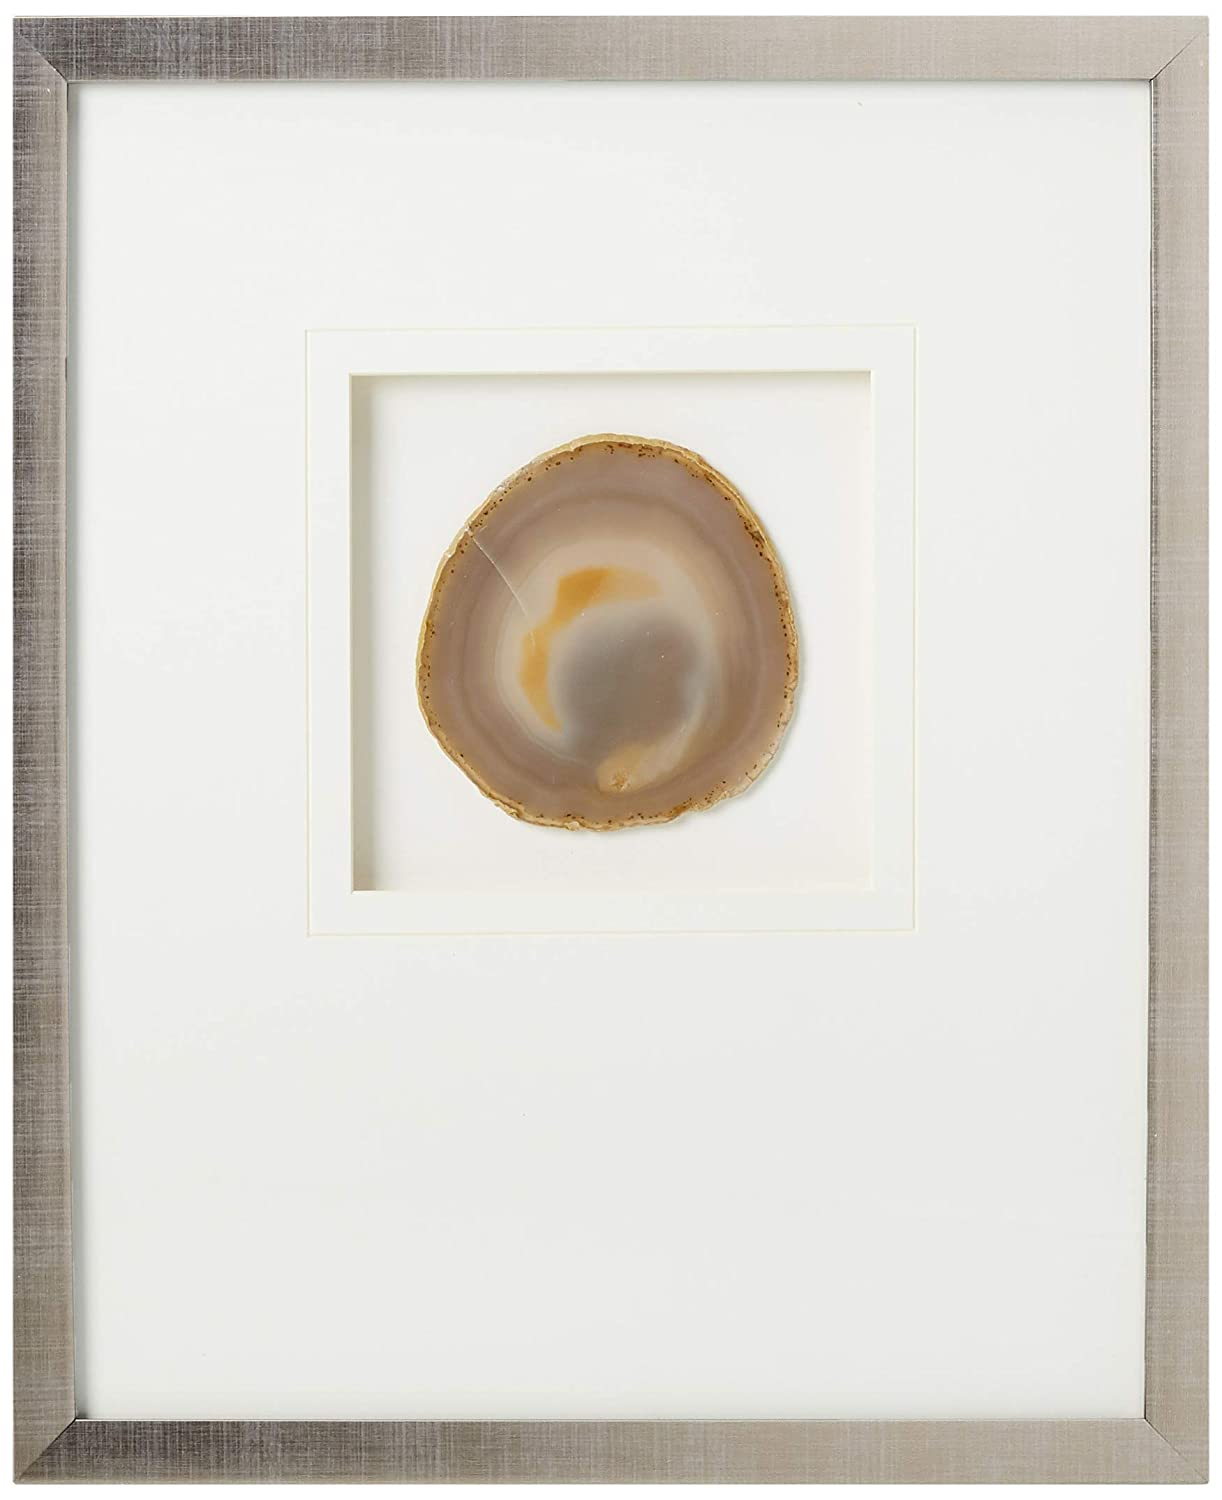 Madison Park Natural Agate Framed Canvas Wall Art 14X17, Global Inspired Wall Décor